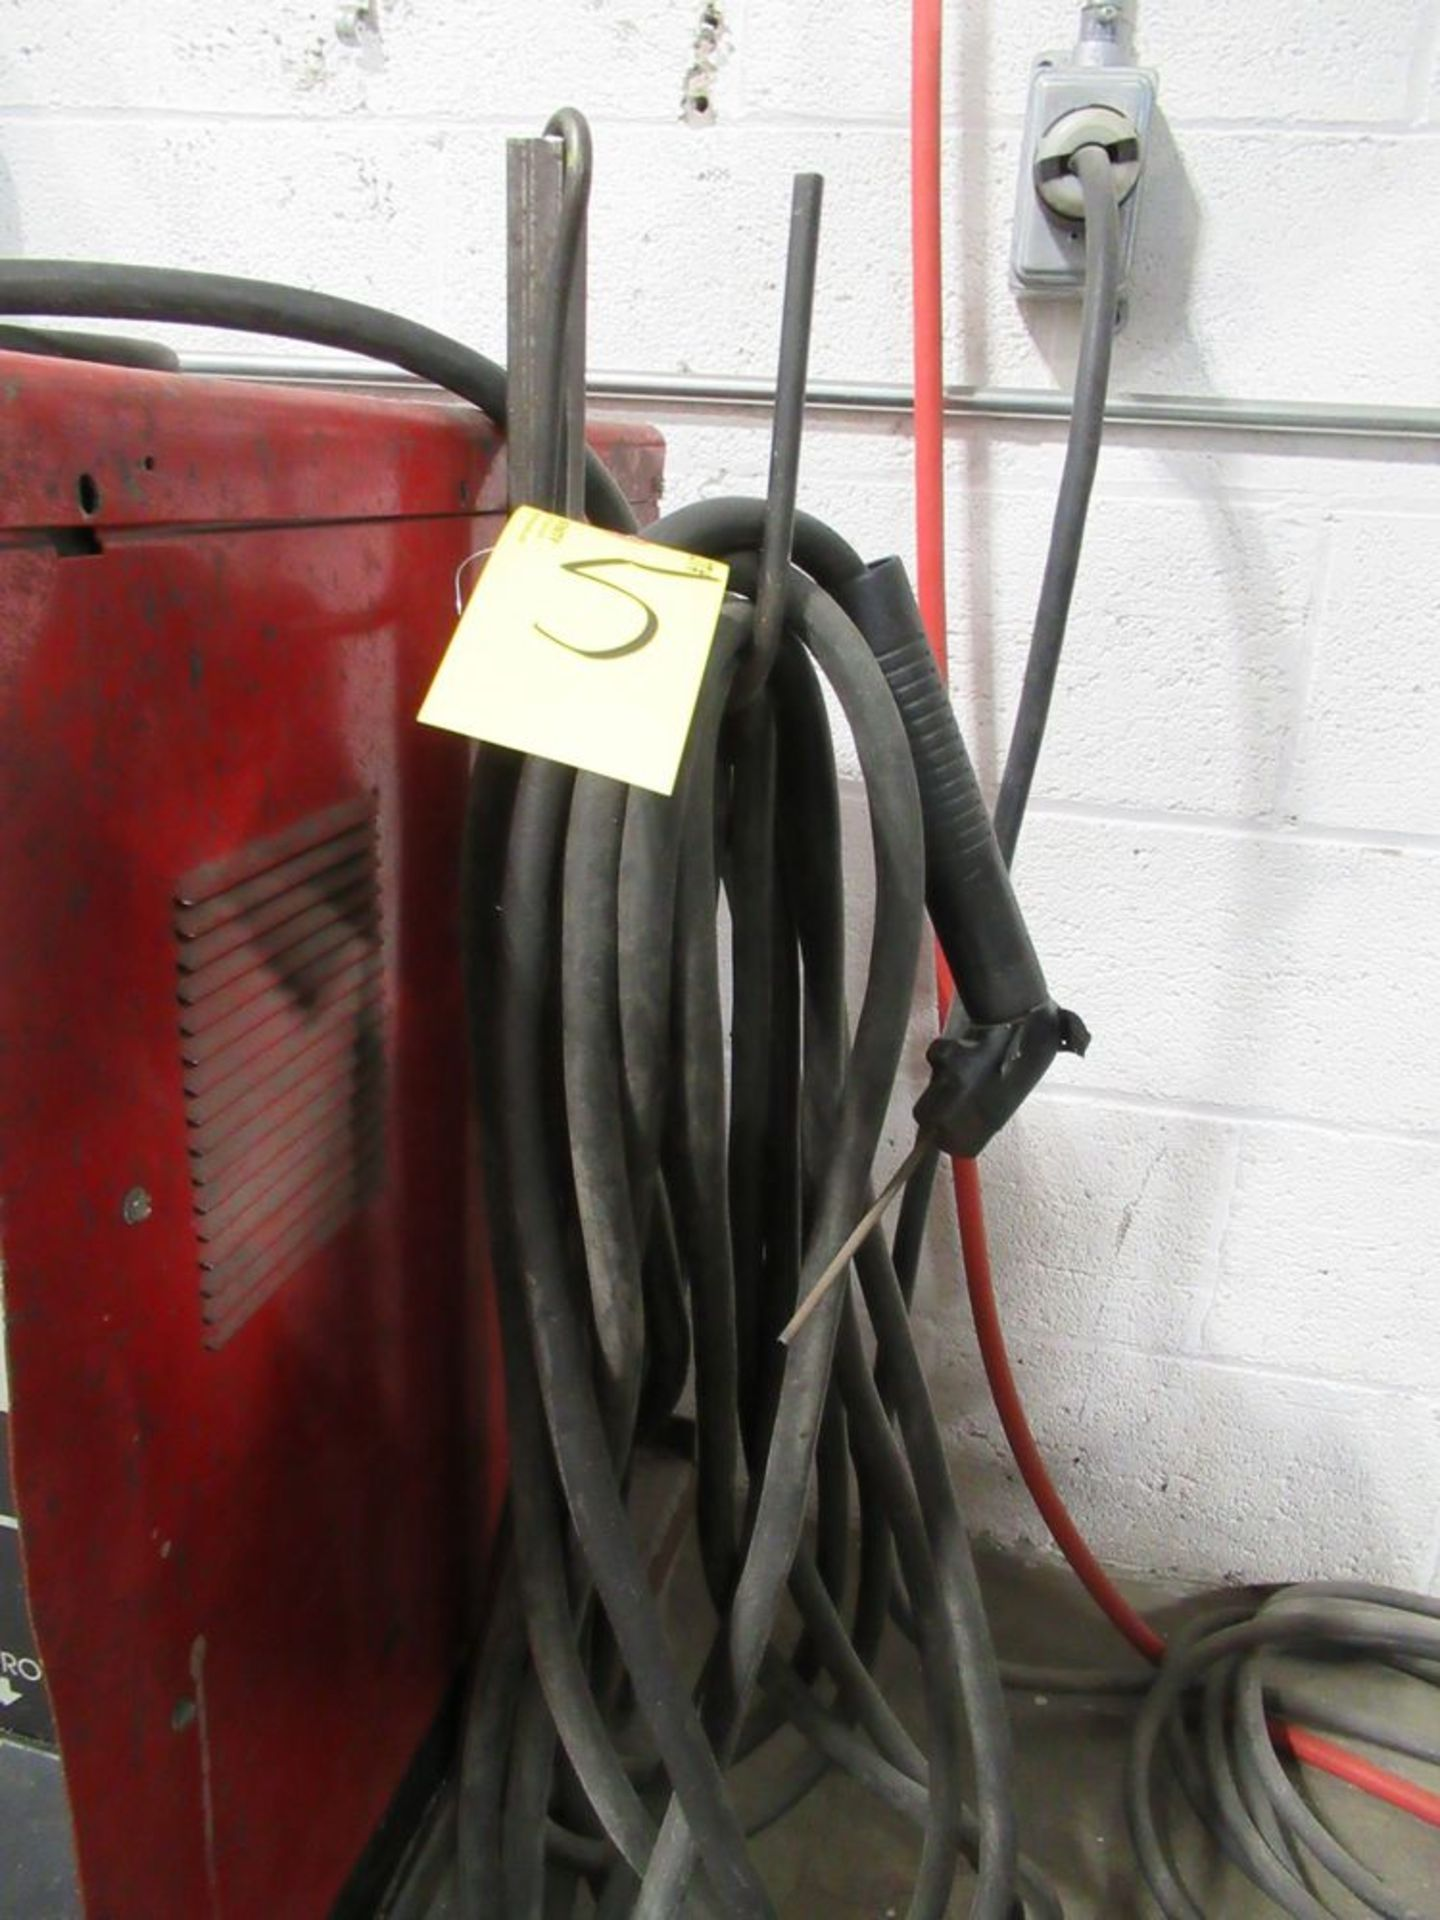 LINCOLN ELECTRIC IDEALARC 250 STICK WELDER, S/N C1000200386 - Image 4 of 5